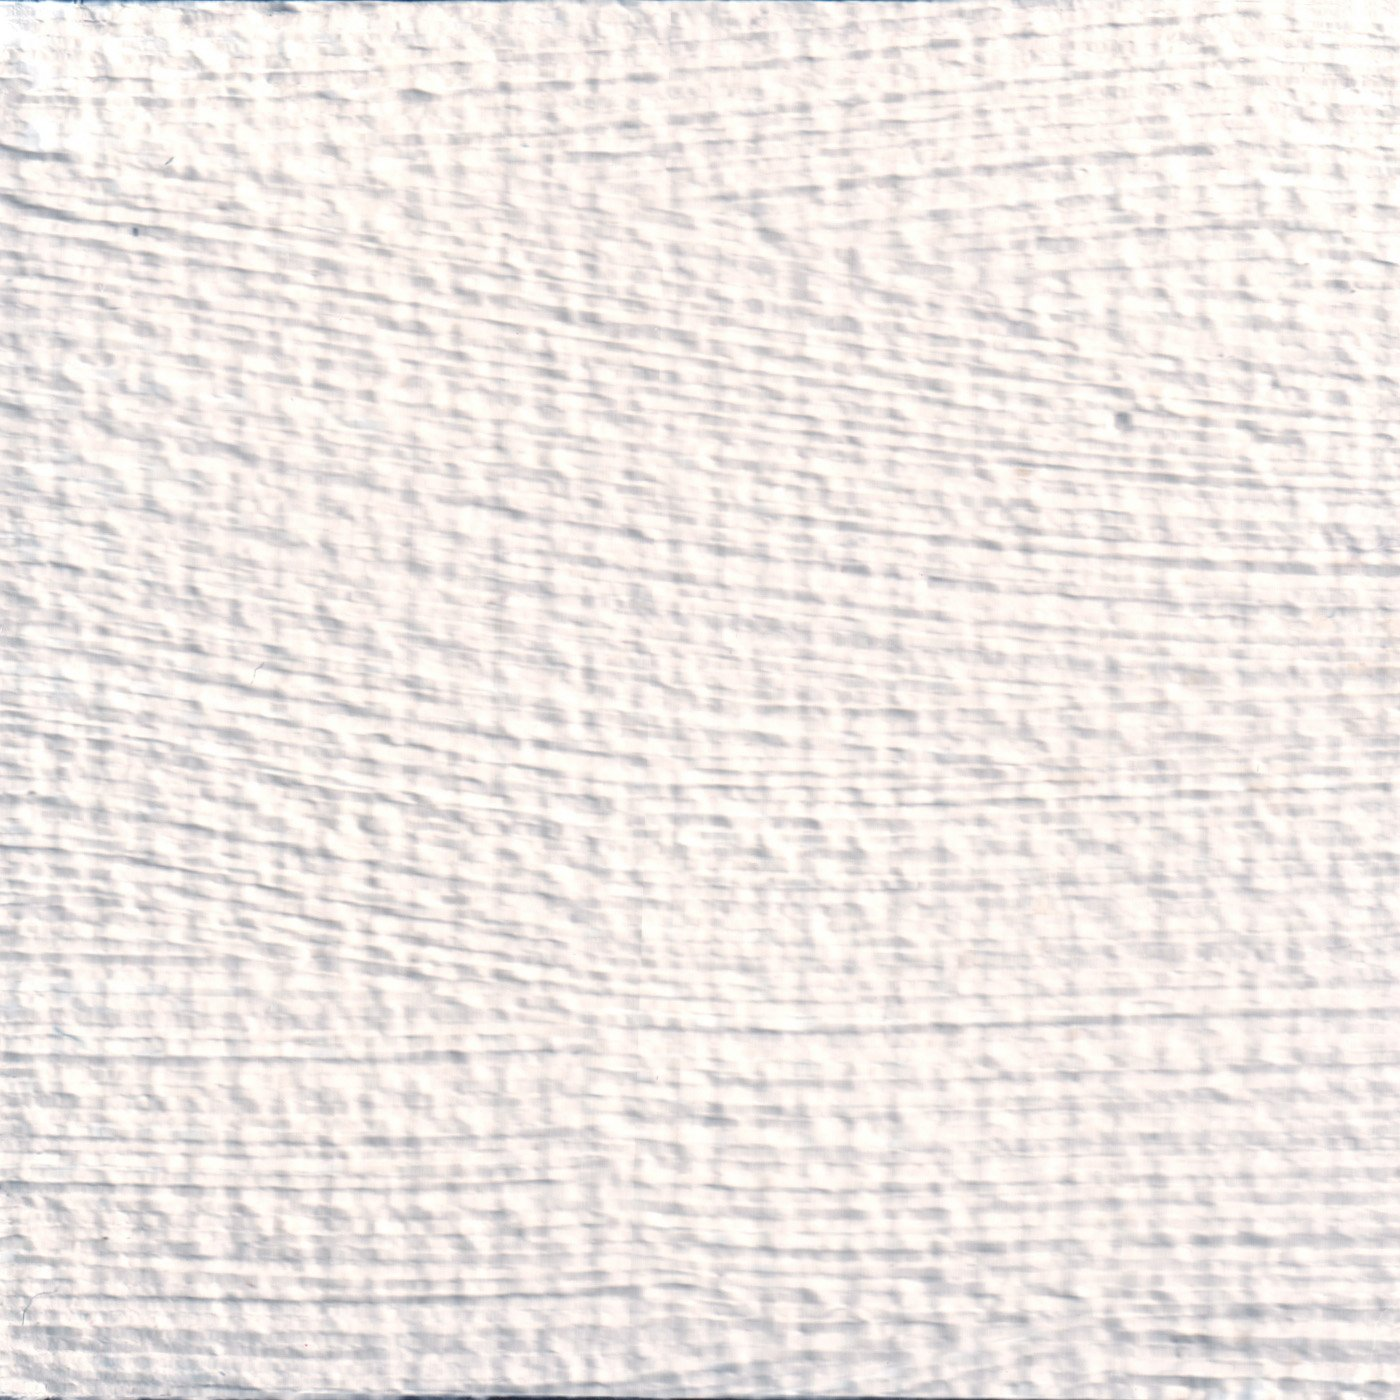 Crystal White Oil Paint